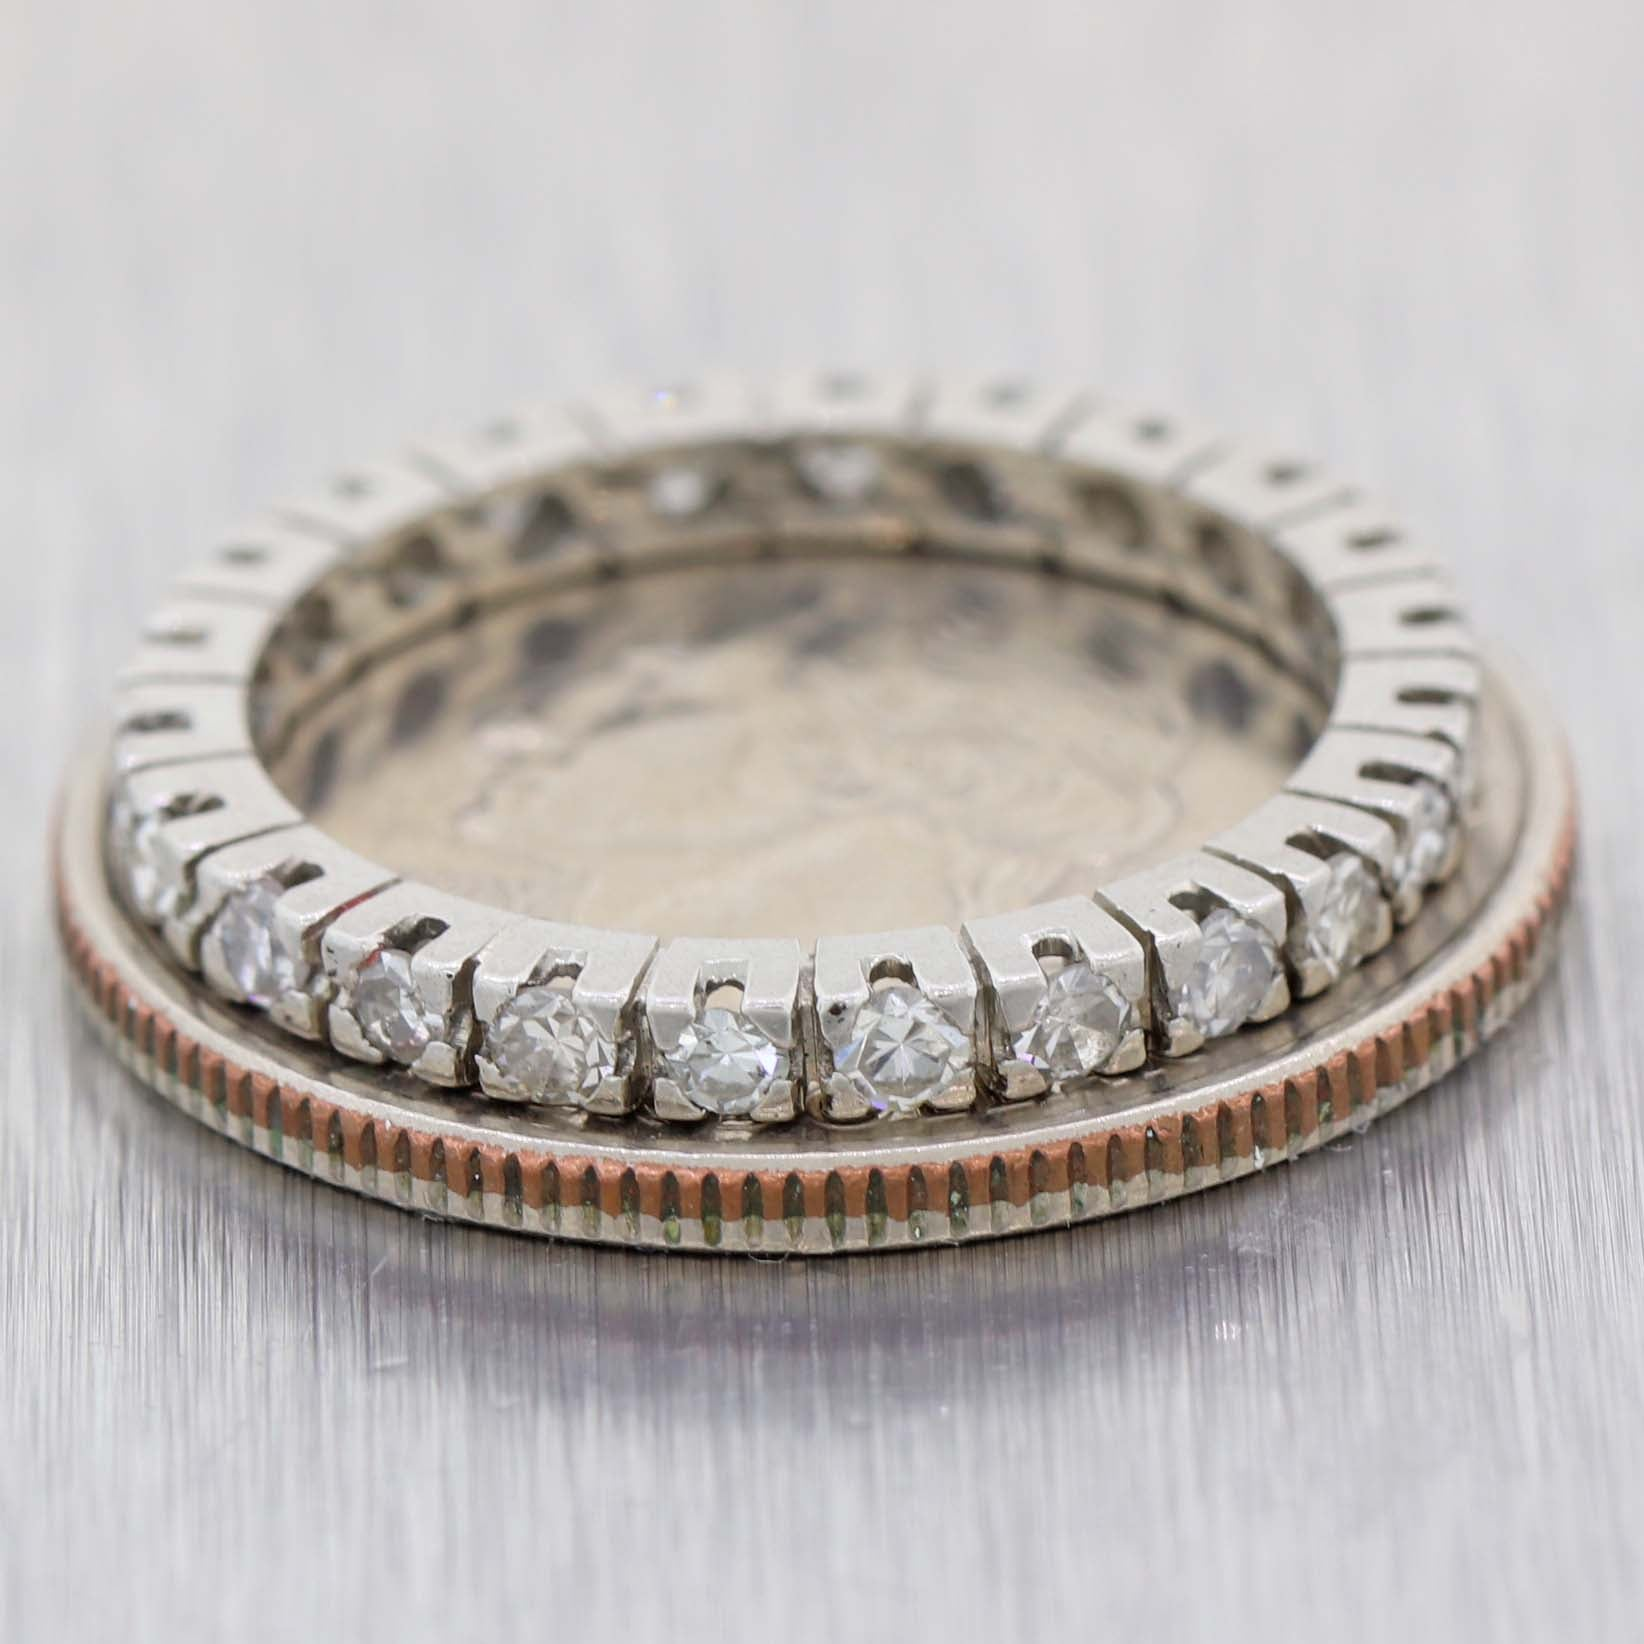 1930s Art Deco Estate Platinum .50ctw Diamond 2mm Eternity Wedding Band Ring